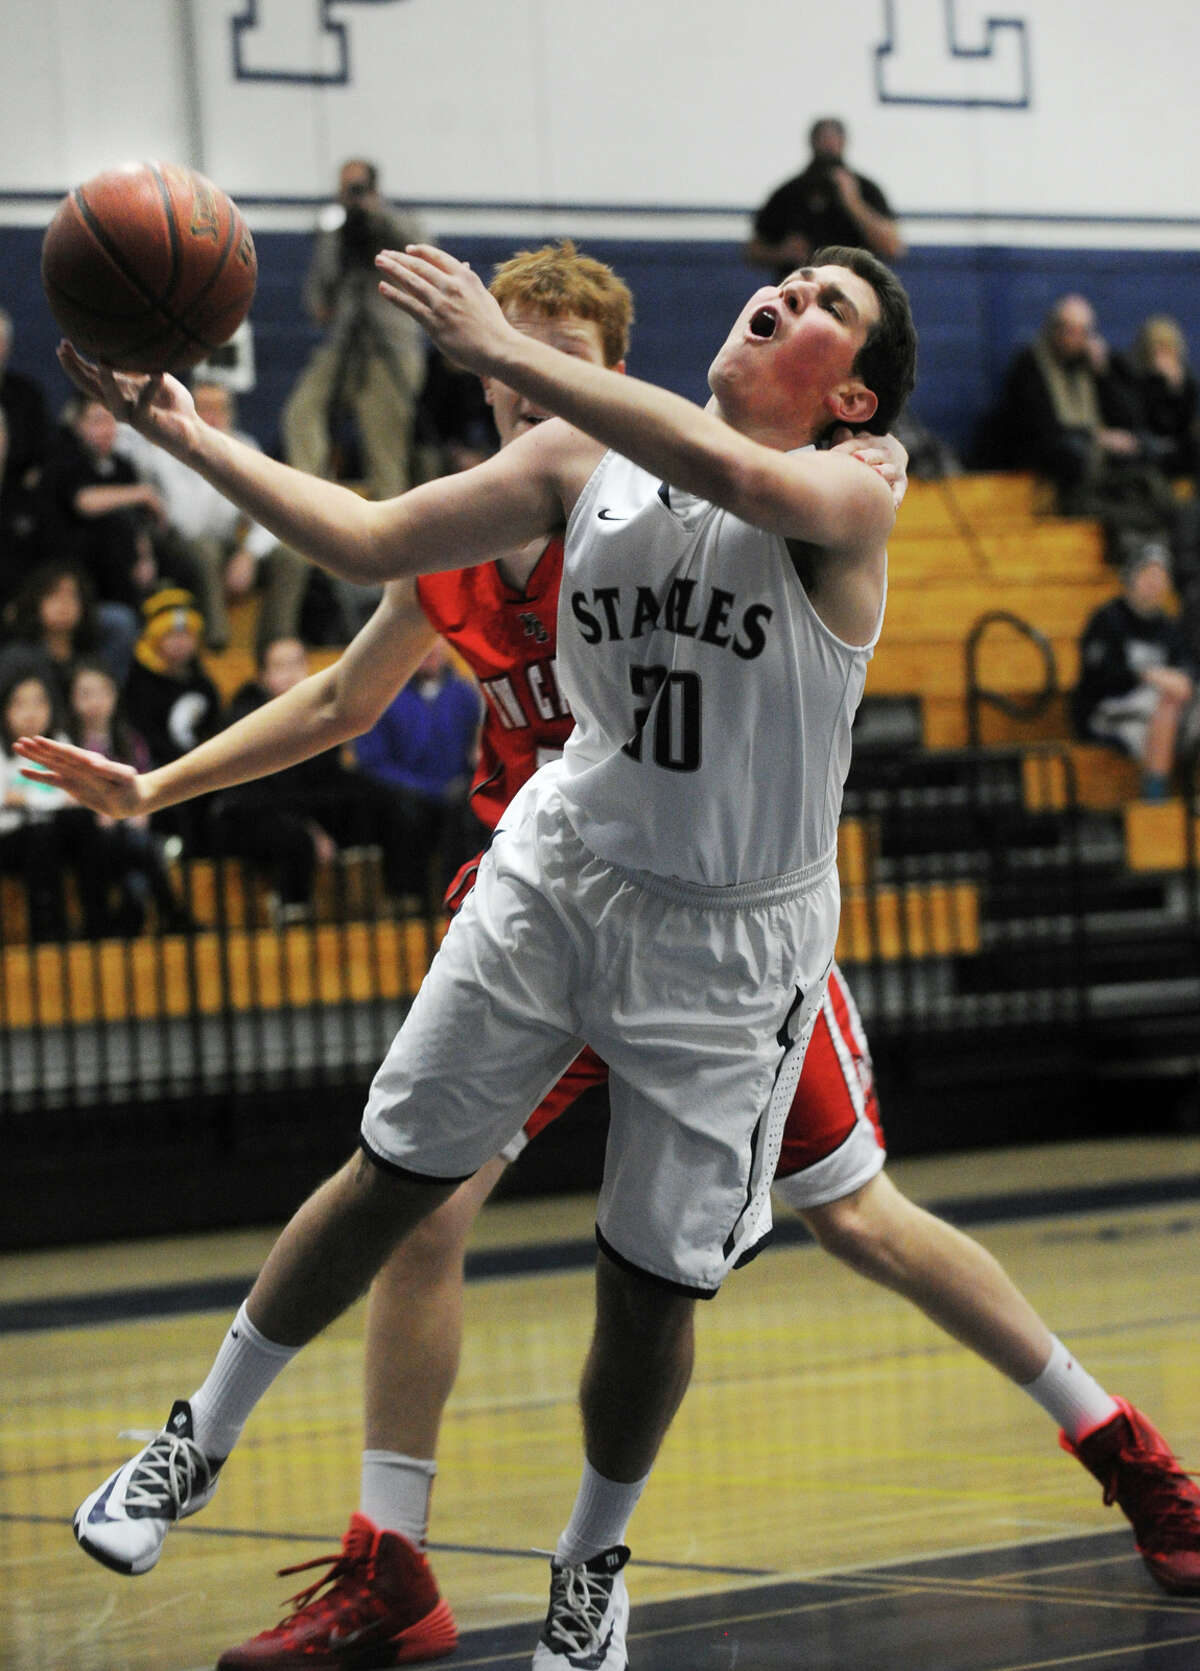 Staples' Andrew Felman is fouled by New Canaan's Andrew Penchuck as he drives to the basket during their boys basketball matchup at Staples High School in Westport, Conn. on Monday, December 30, 2013.